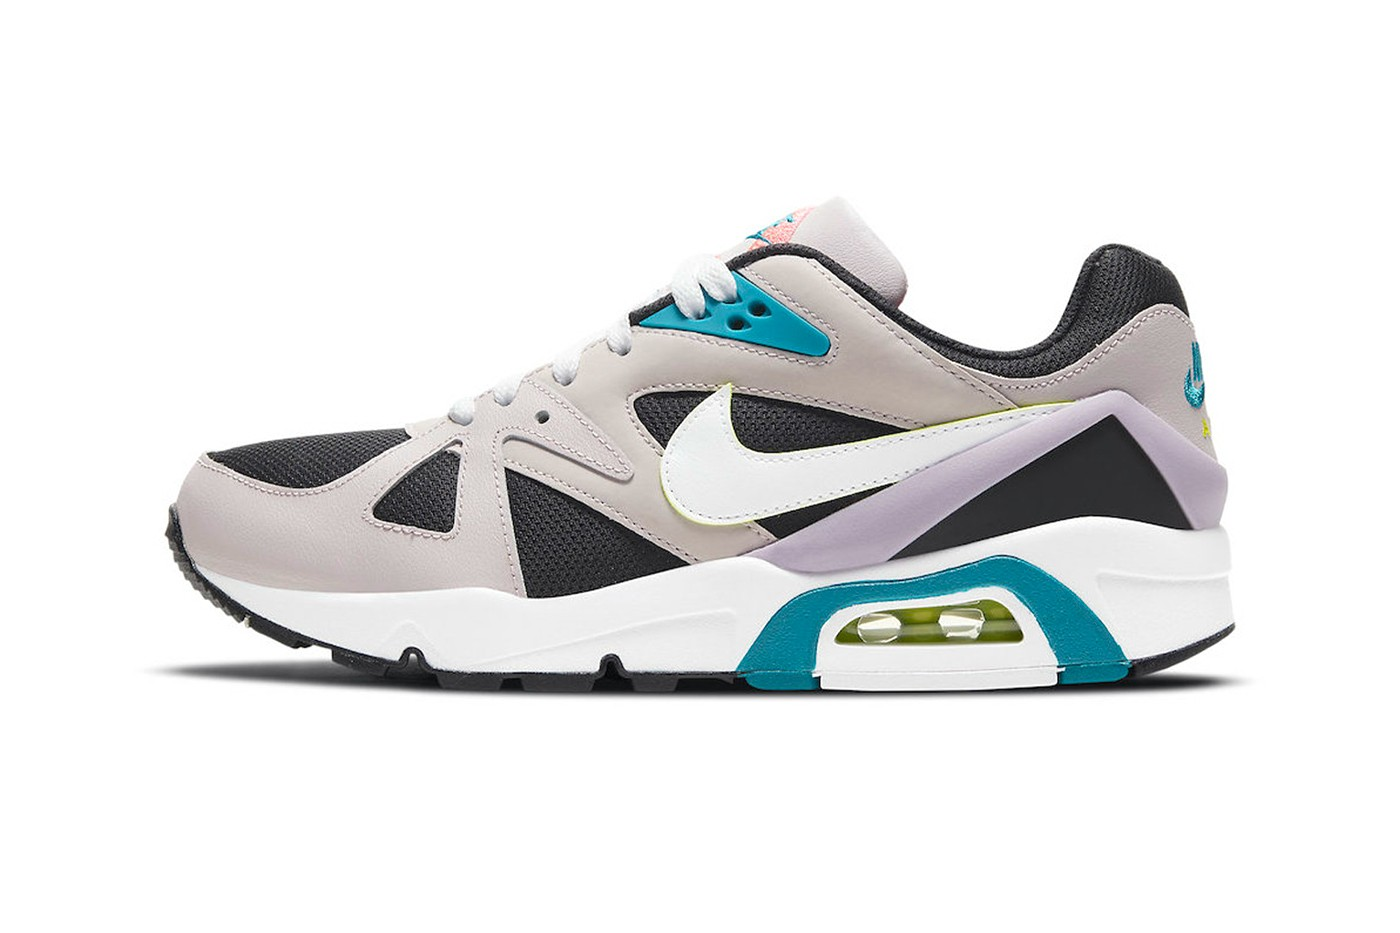 Nike Air Structure Triax 91 Returns in New Retro Colourway